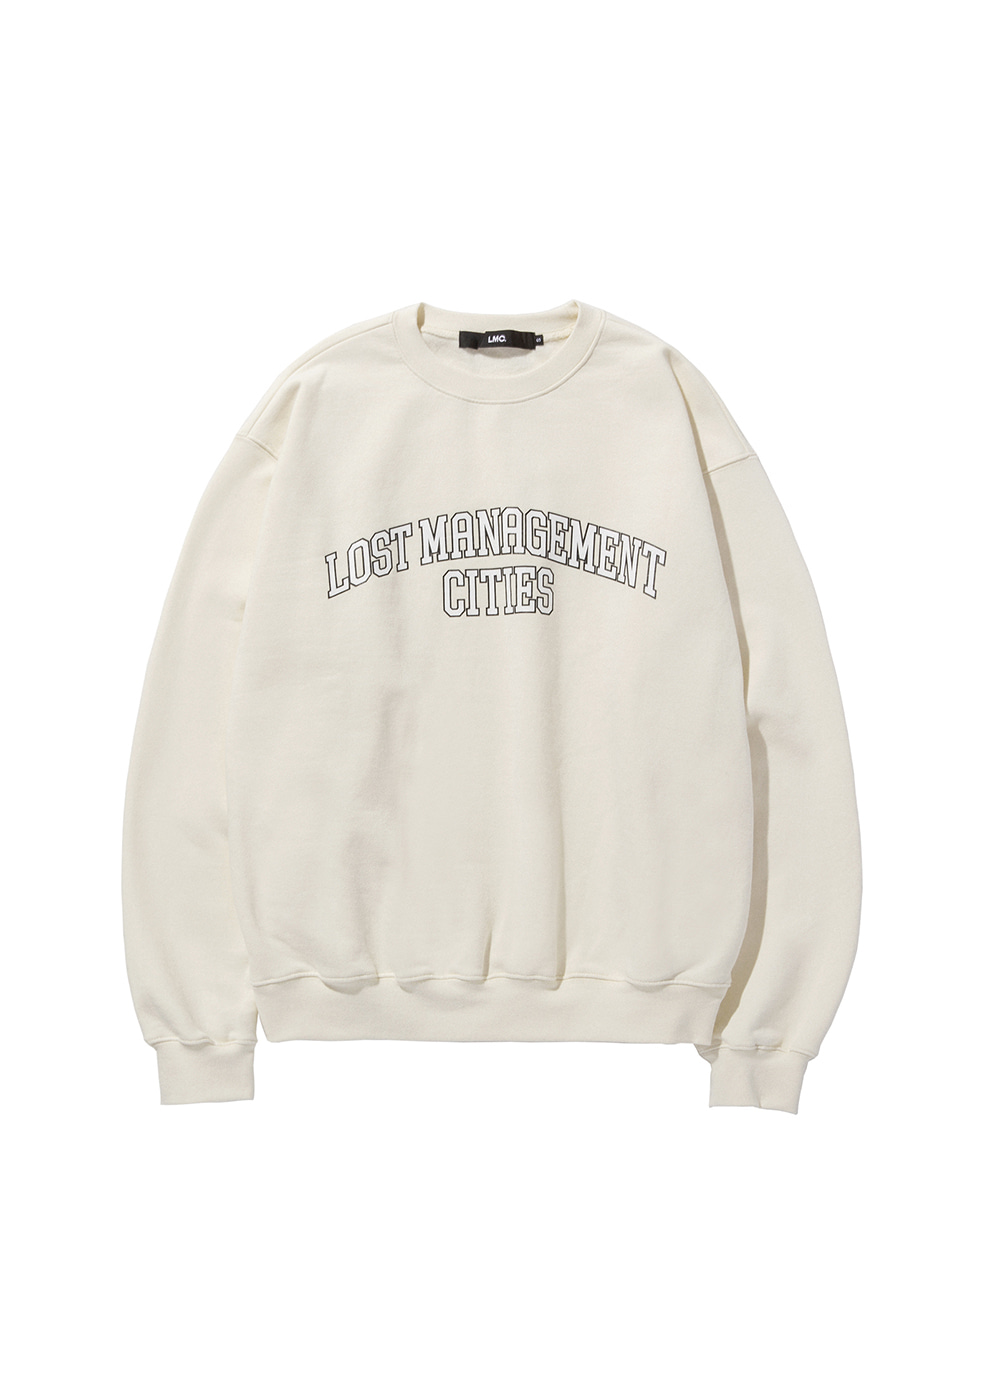 LMC ARCH FN EDGE SWEATSHIRT cream